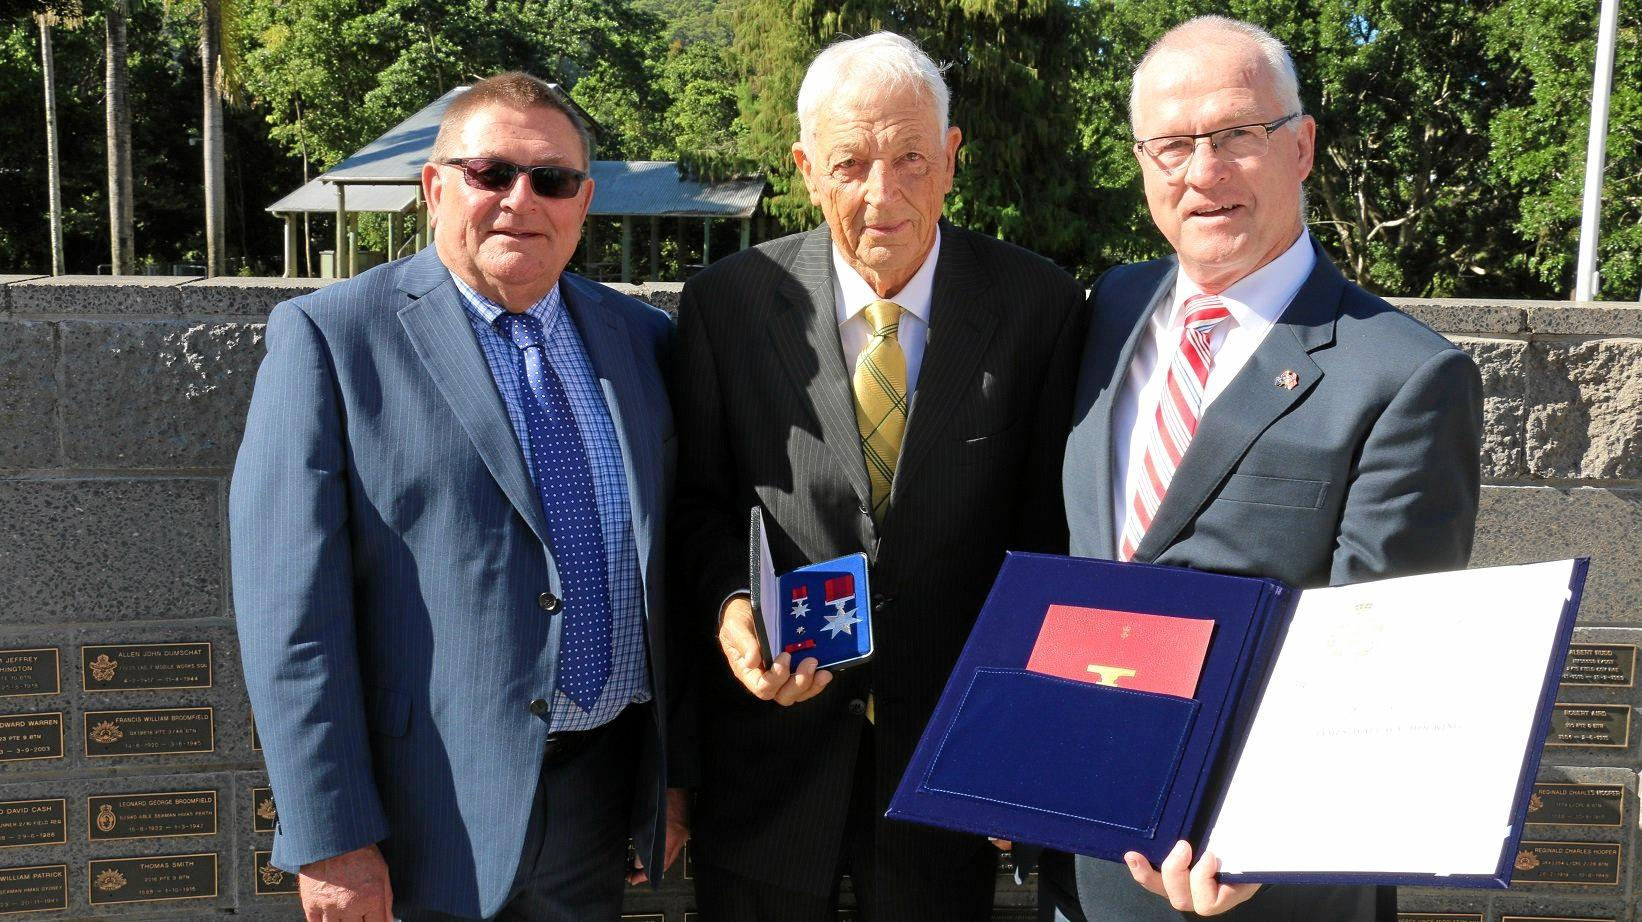 Cr Mike Cornwell, from Fenland District Council in England, Alan Hocking and Mayor Mark Jamieson.